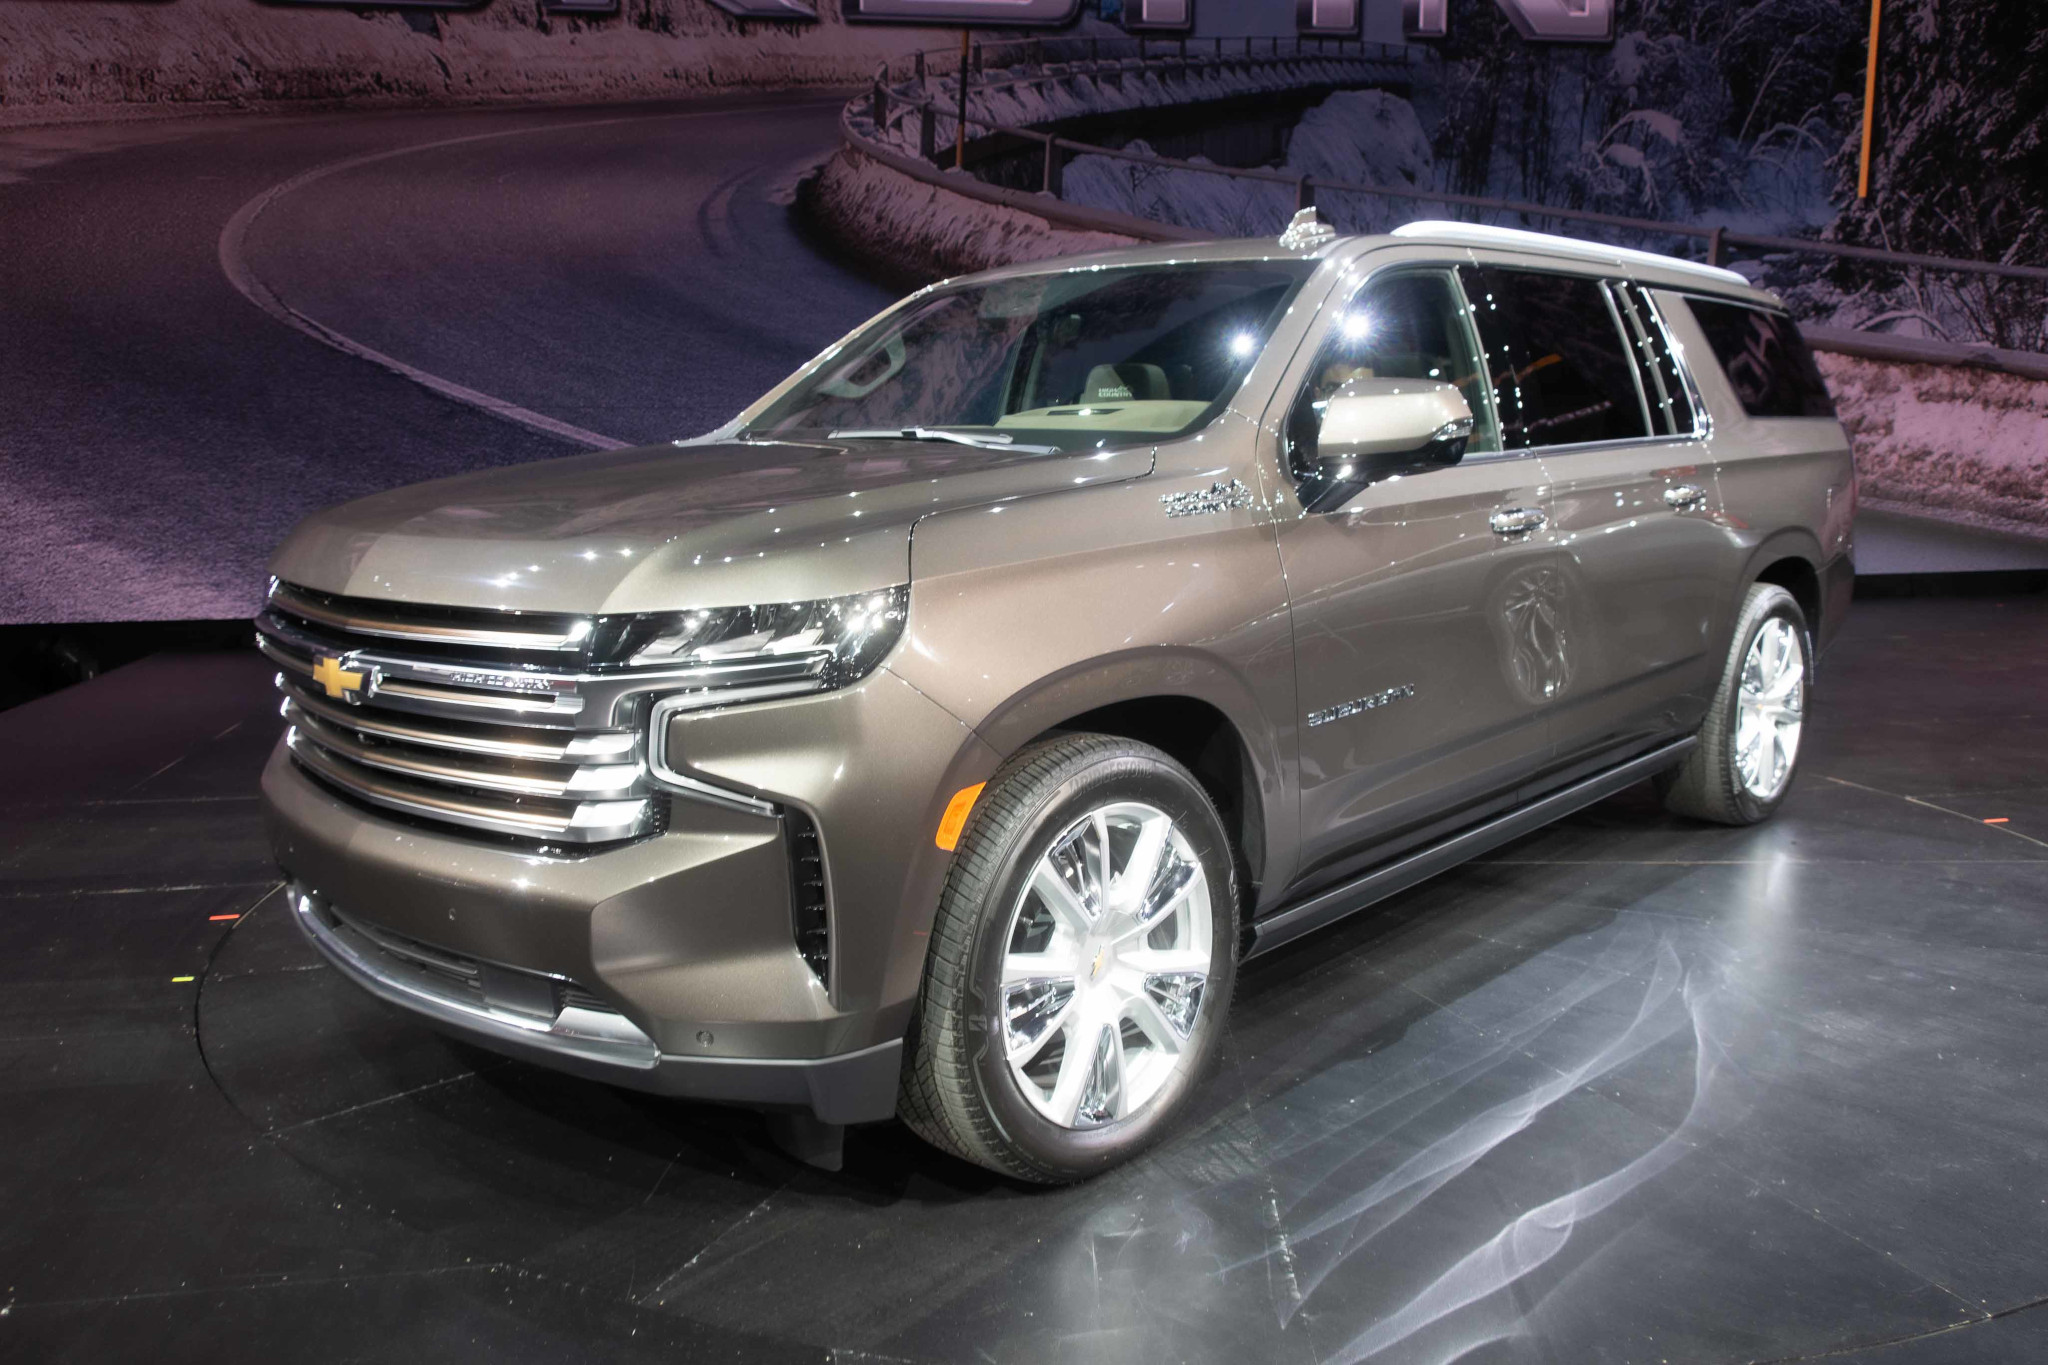 2021 Chevrolet Suburban and Tahoe: The General Did Its Homework